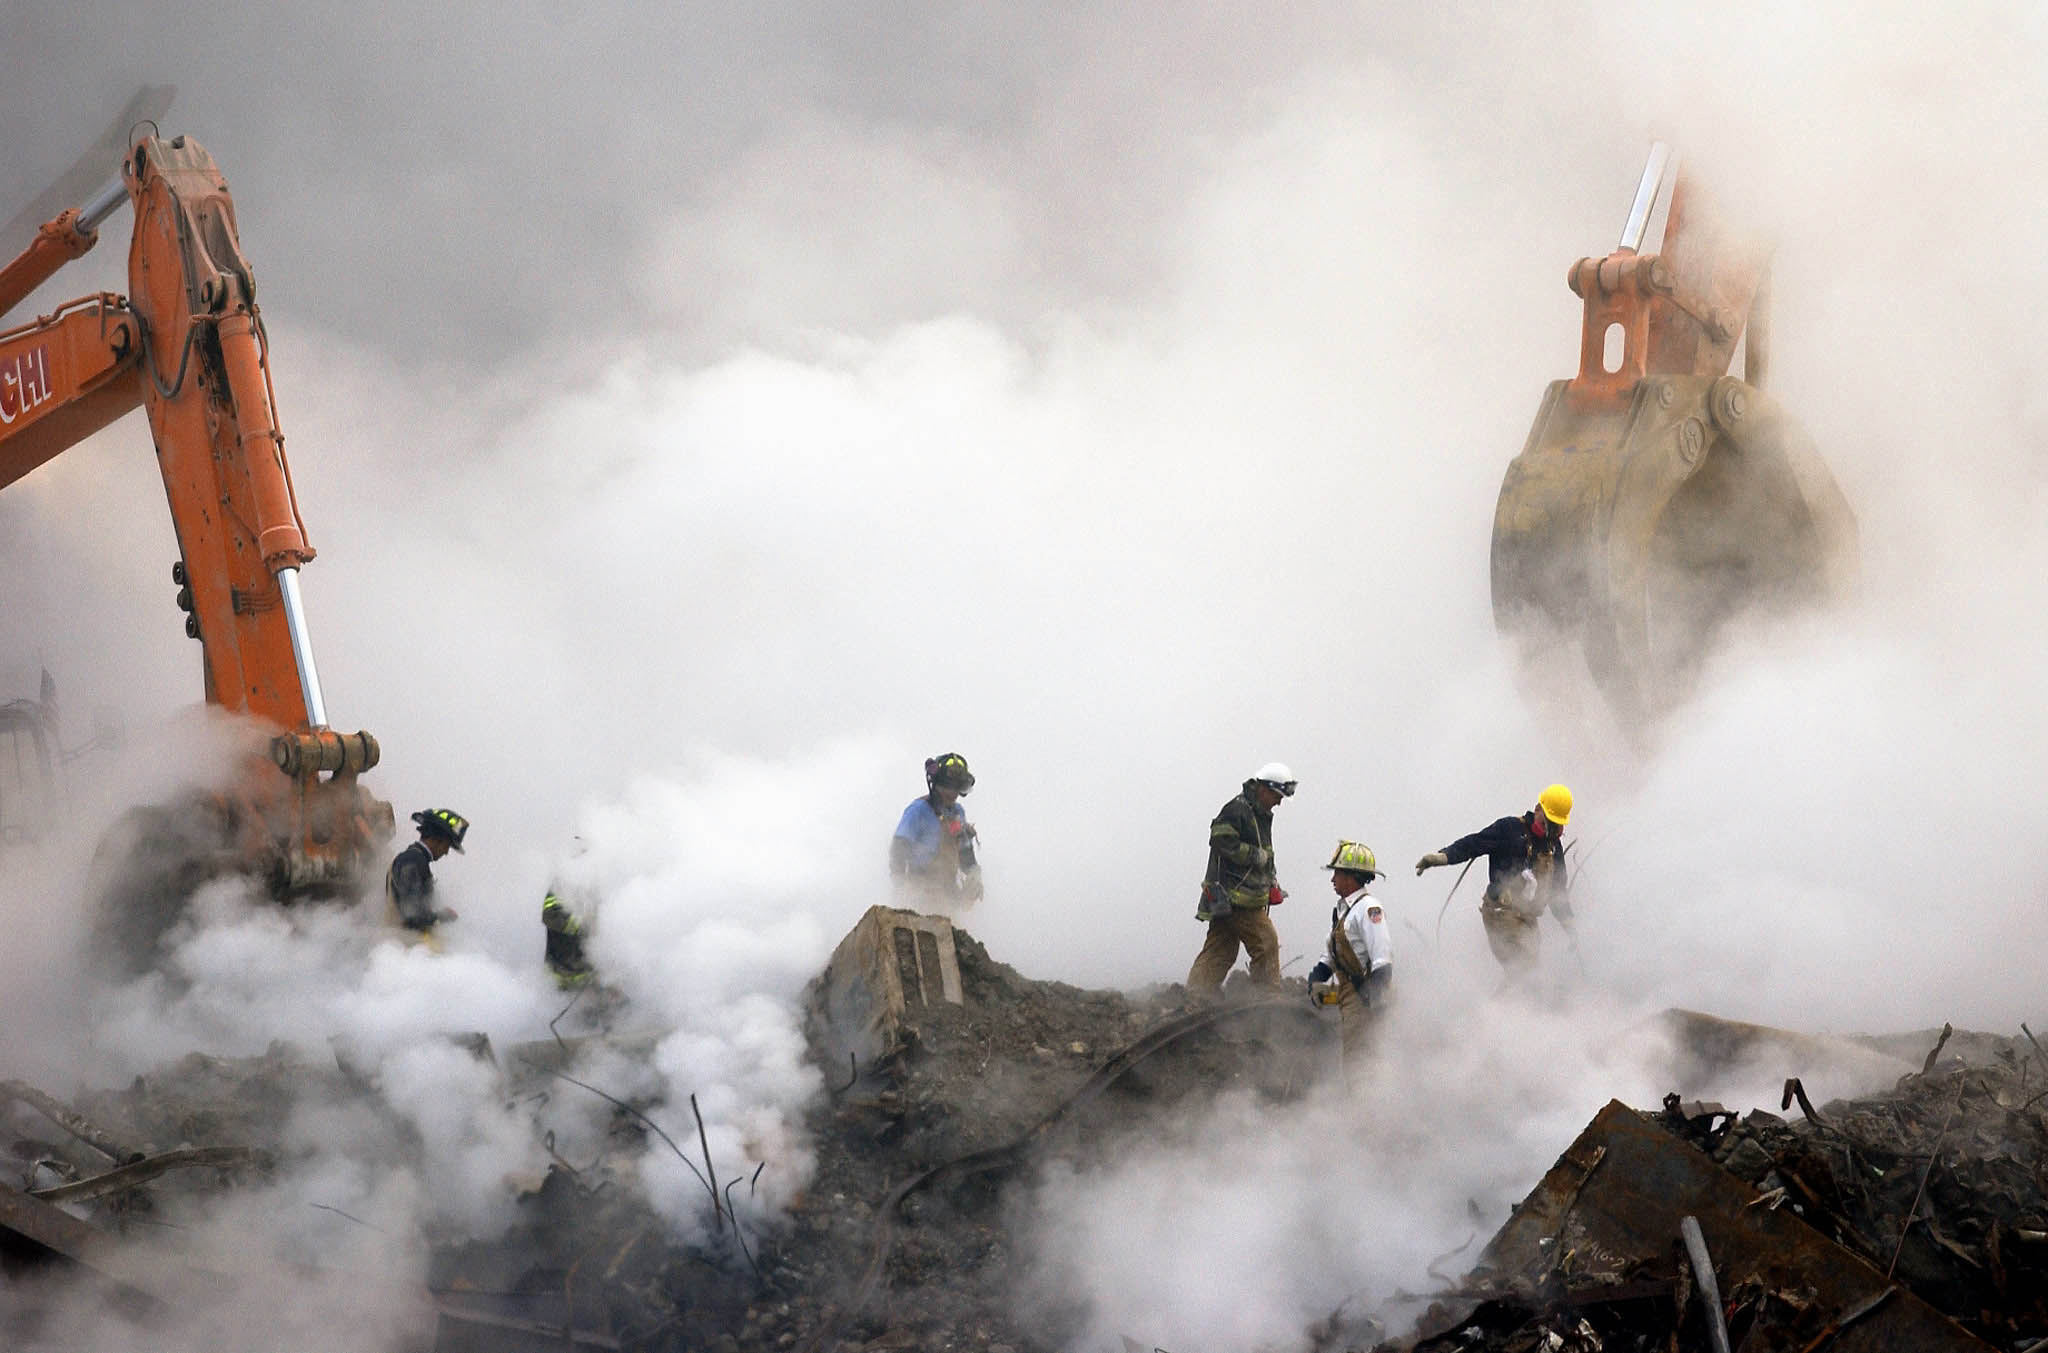 Firefighters make their way over the ruins of the World Trade Center through clouds of dust and smoke at ground zero in New York on Oct. 11, 2001.